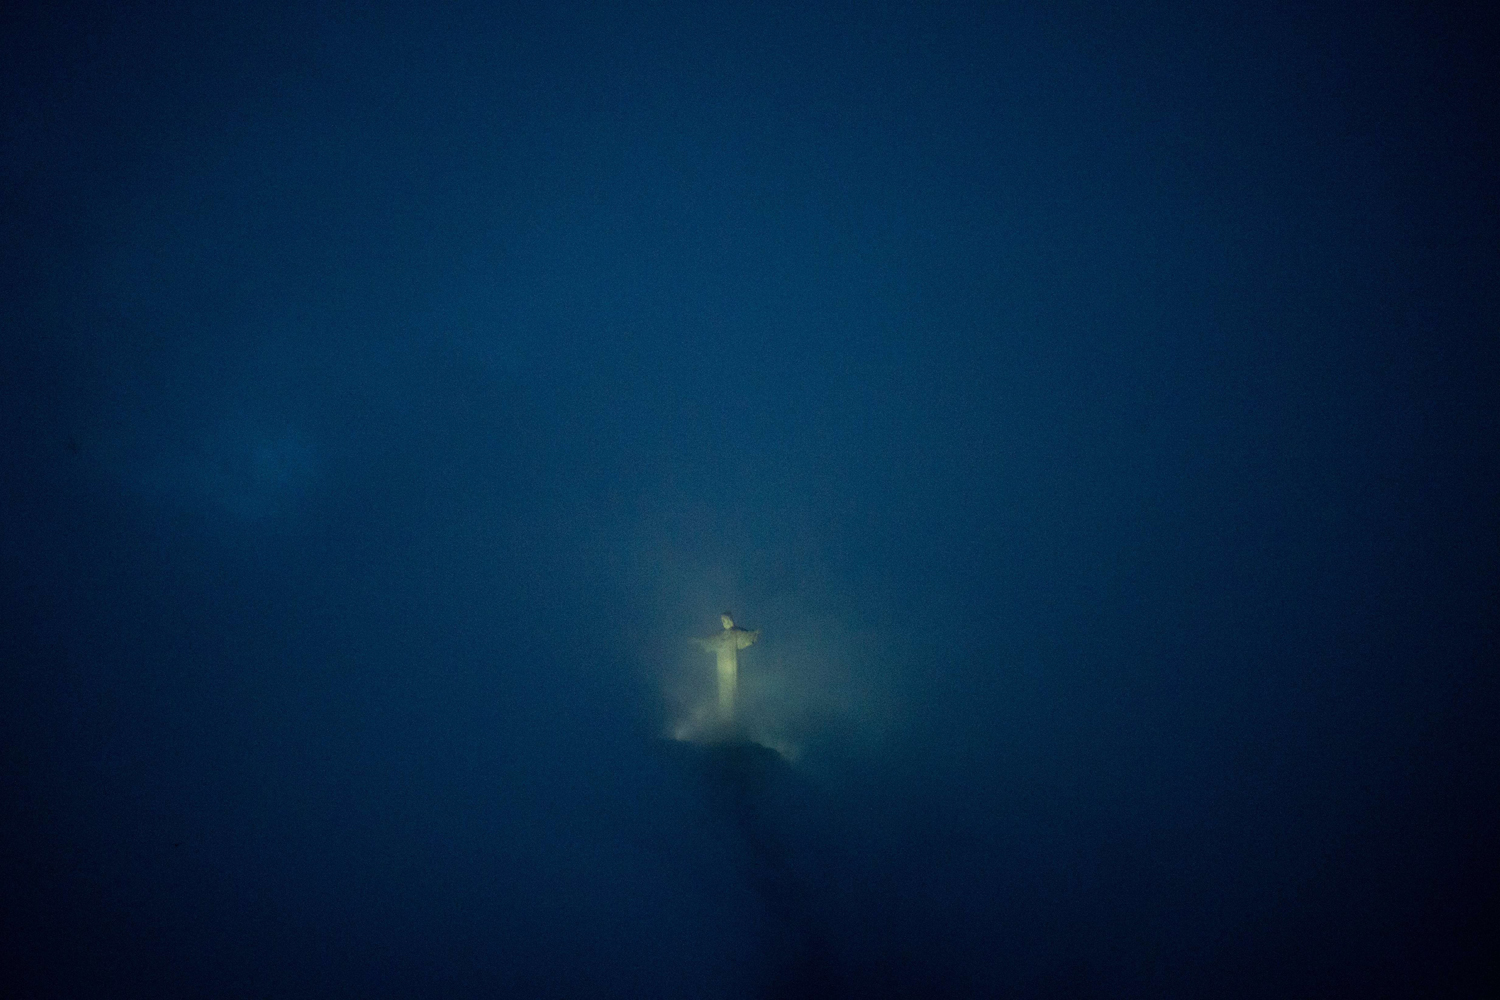 May 23, 2014. The Christ the Reedemer statue atop the Corcovado mountain is seen at night in Rio de Janeiro on Brazil